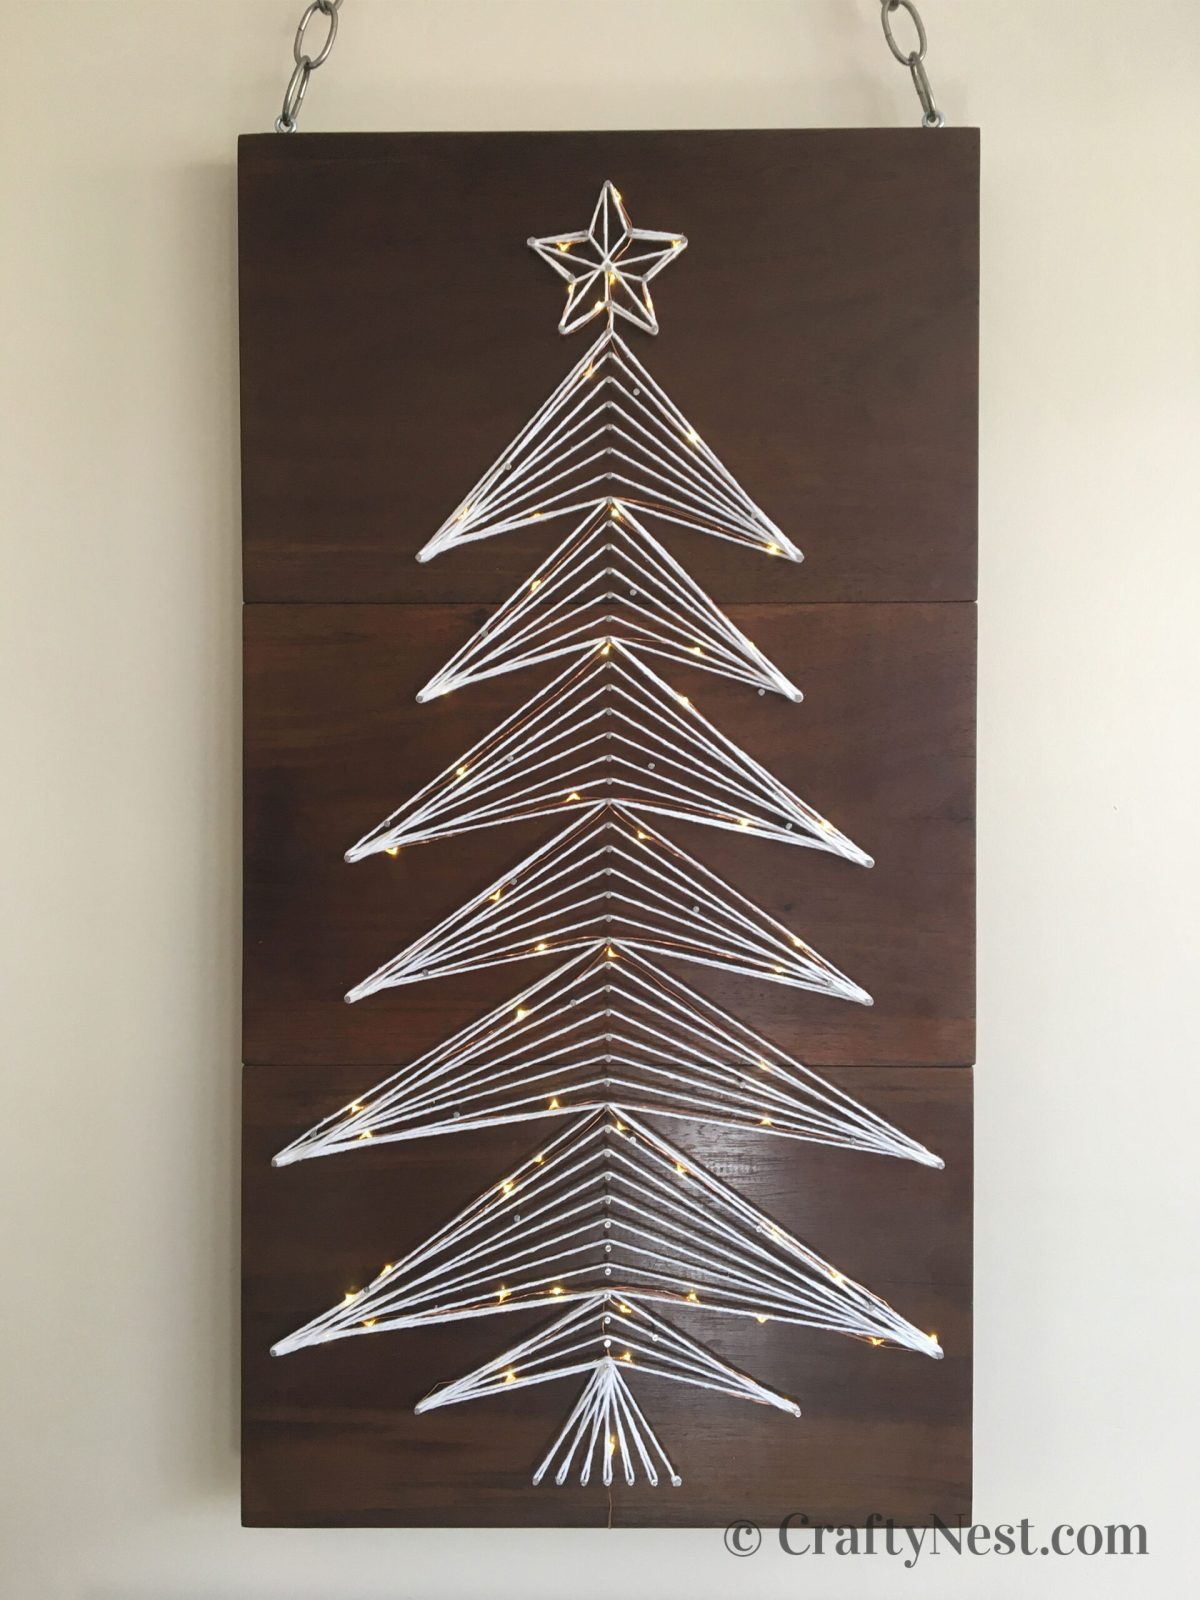 String-art Christmas tree with lights, photo